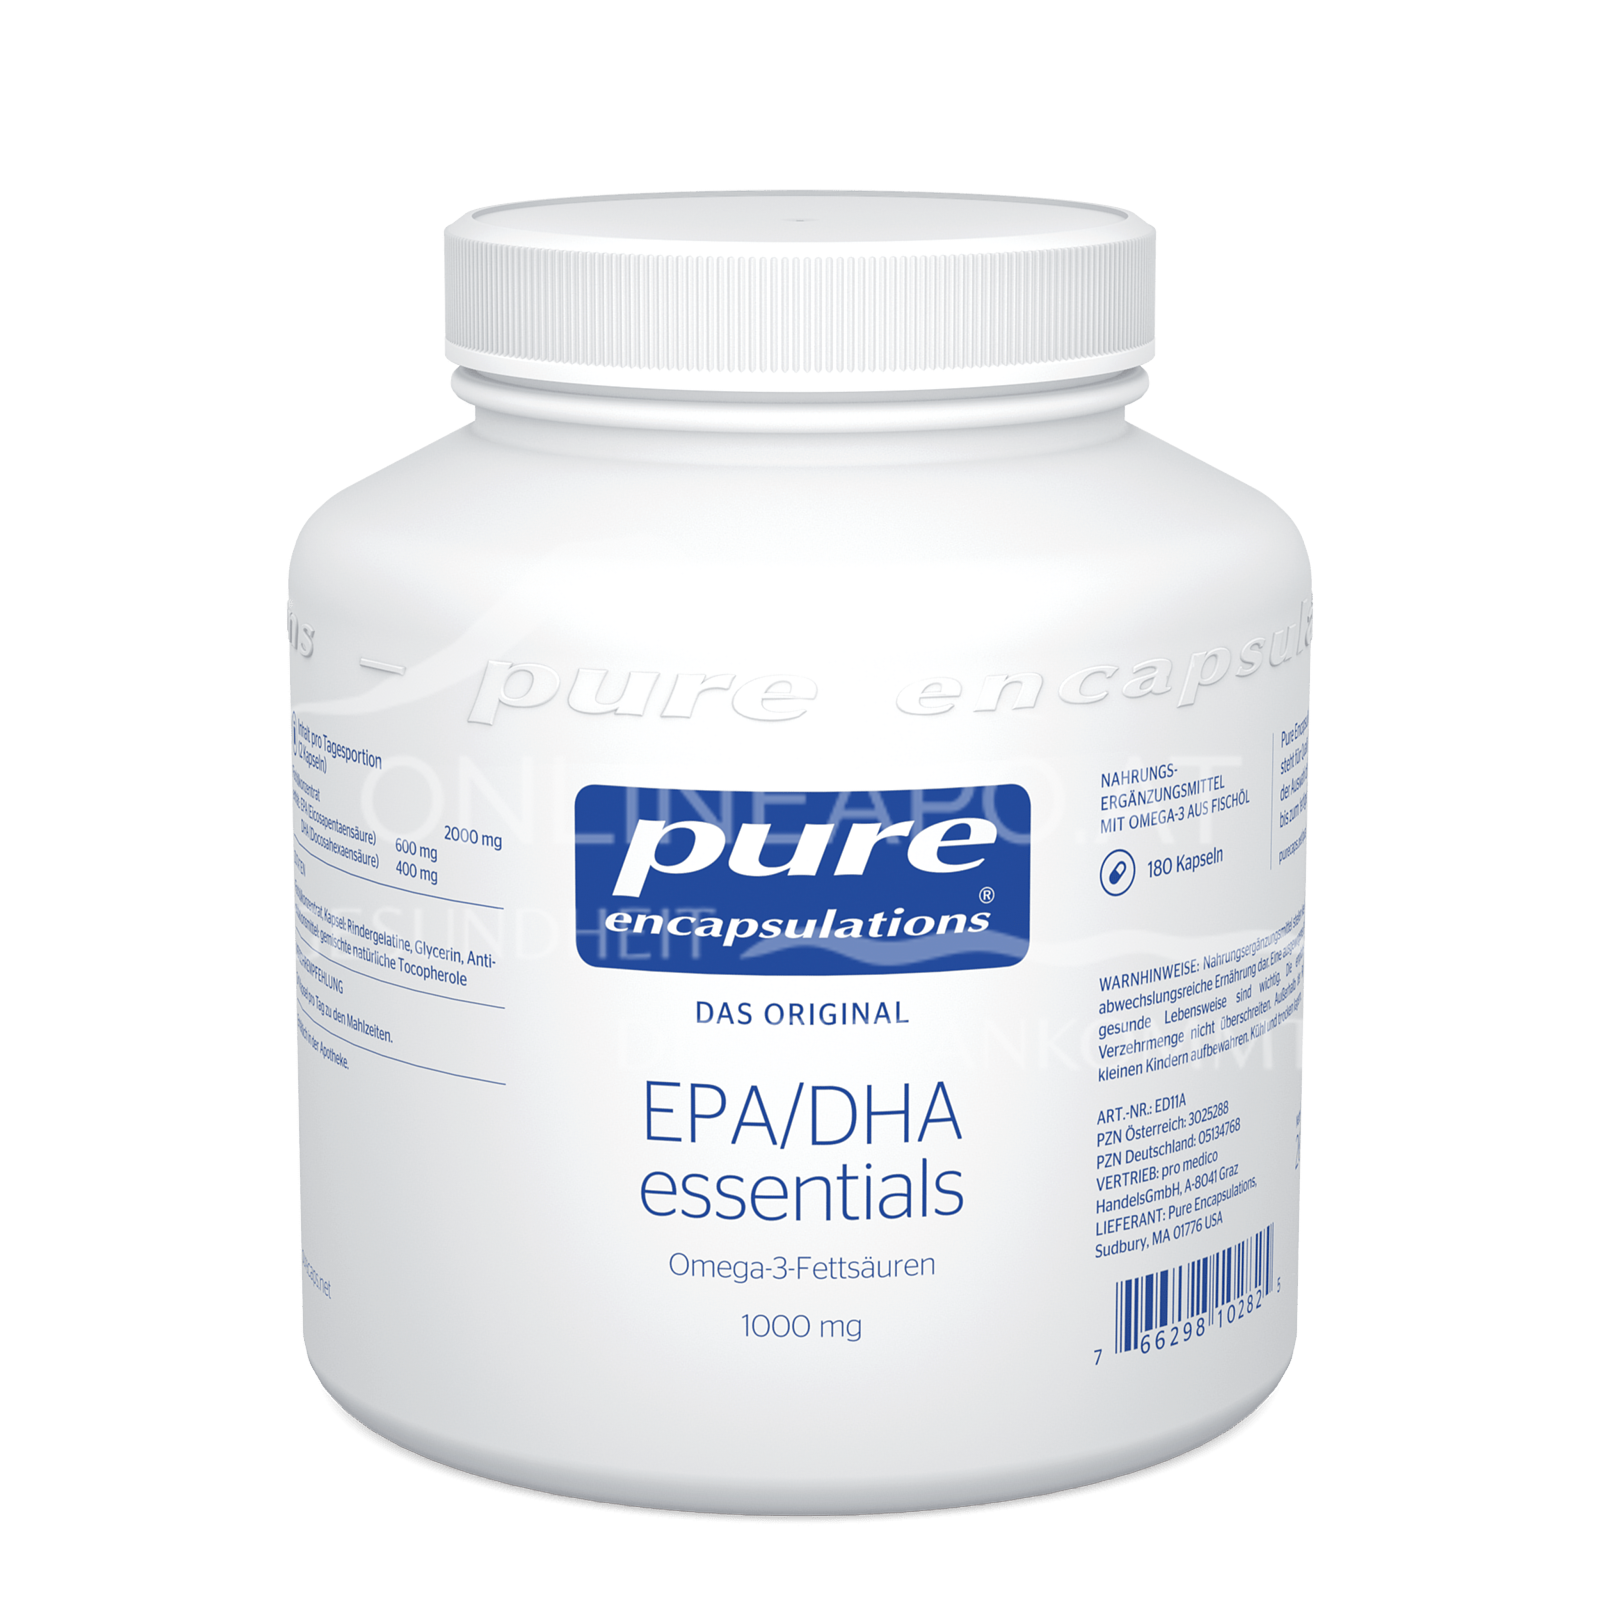 pure encapsulations® EPA/DHA essentials